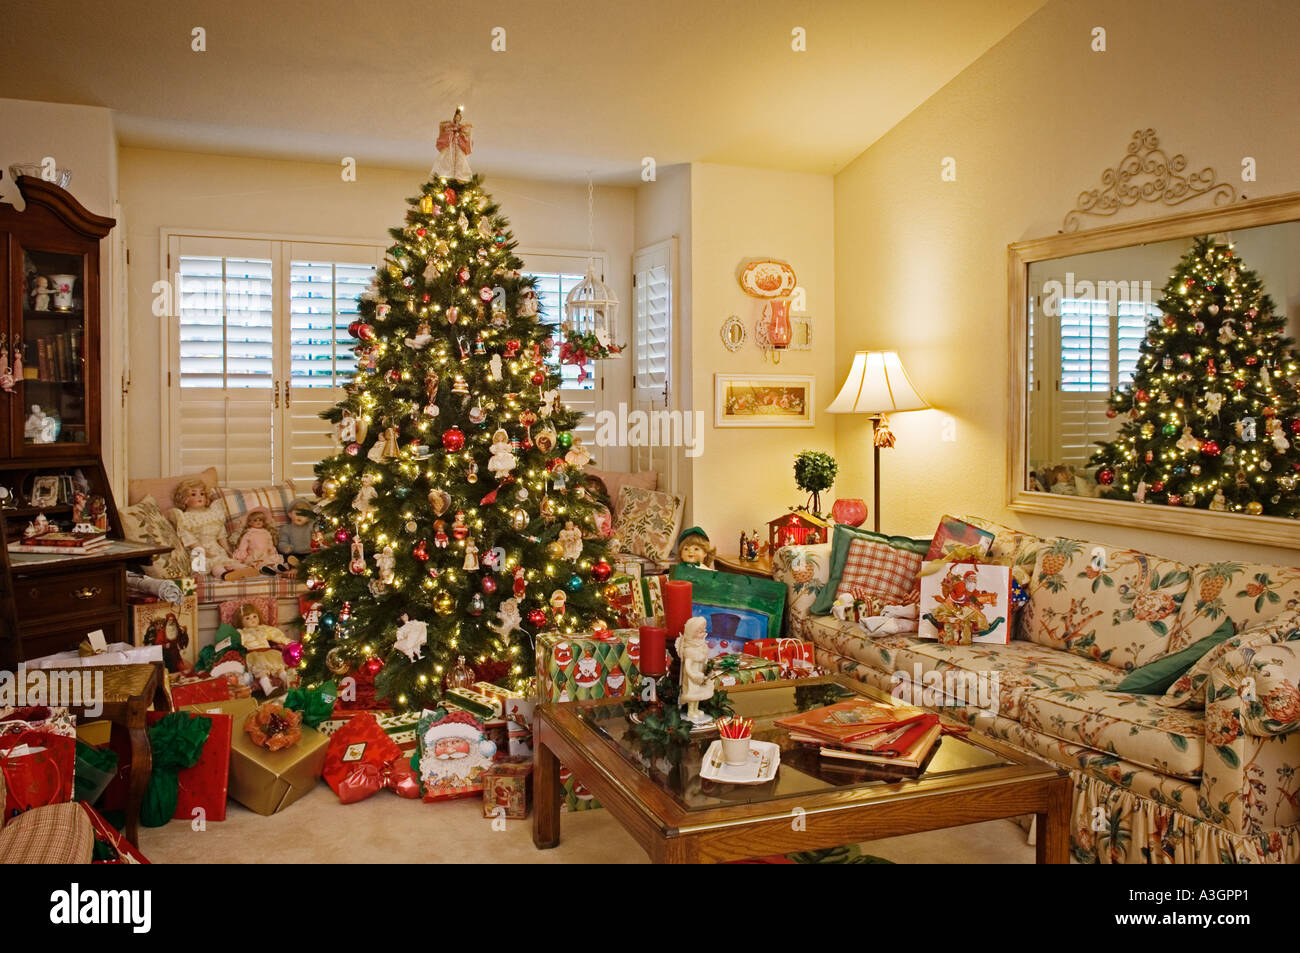 Christmas tree decorations and gifts in living room of for Home decor online shopping usa